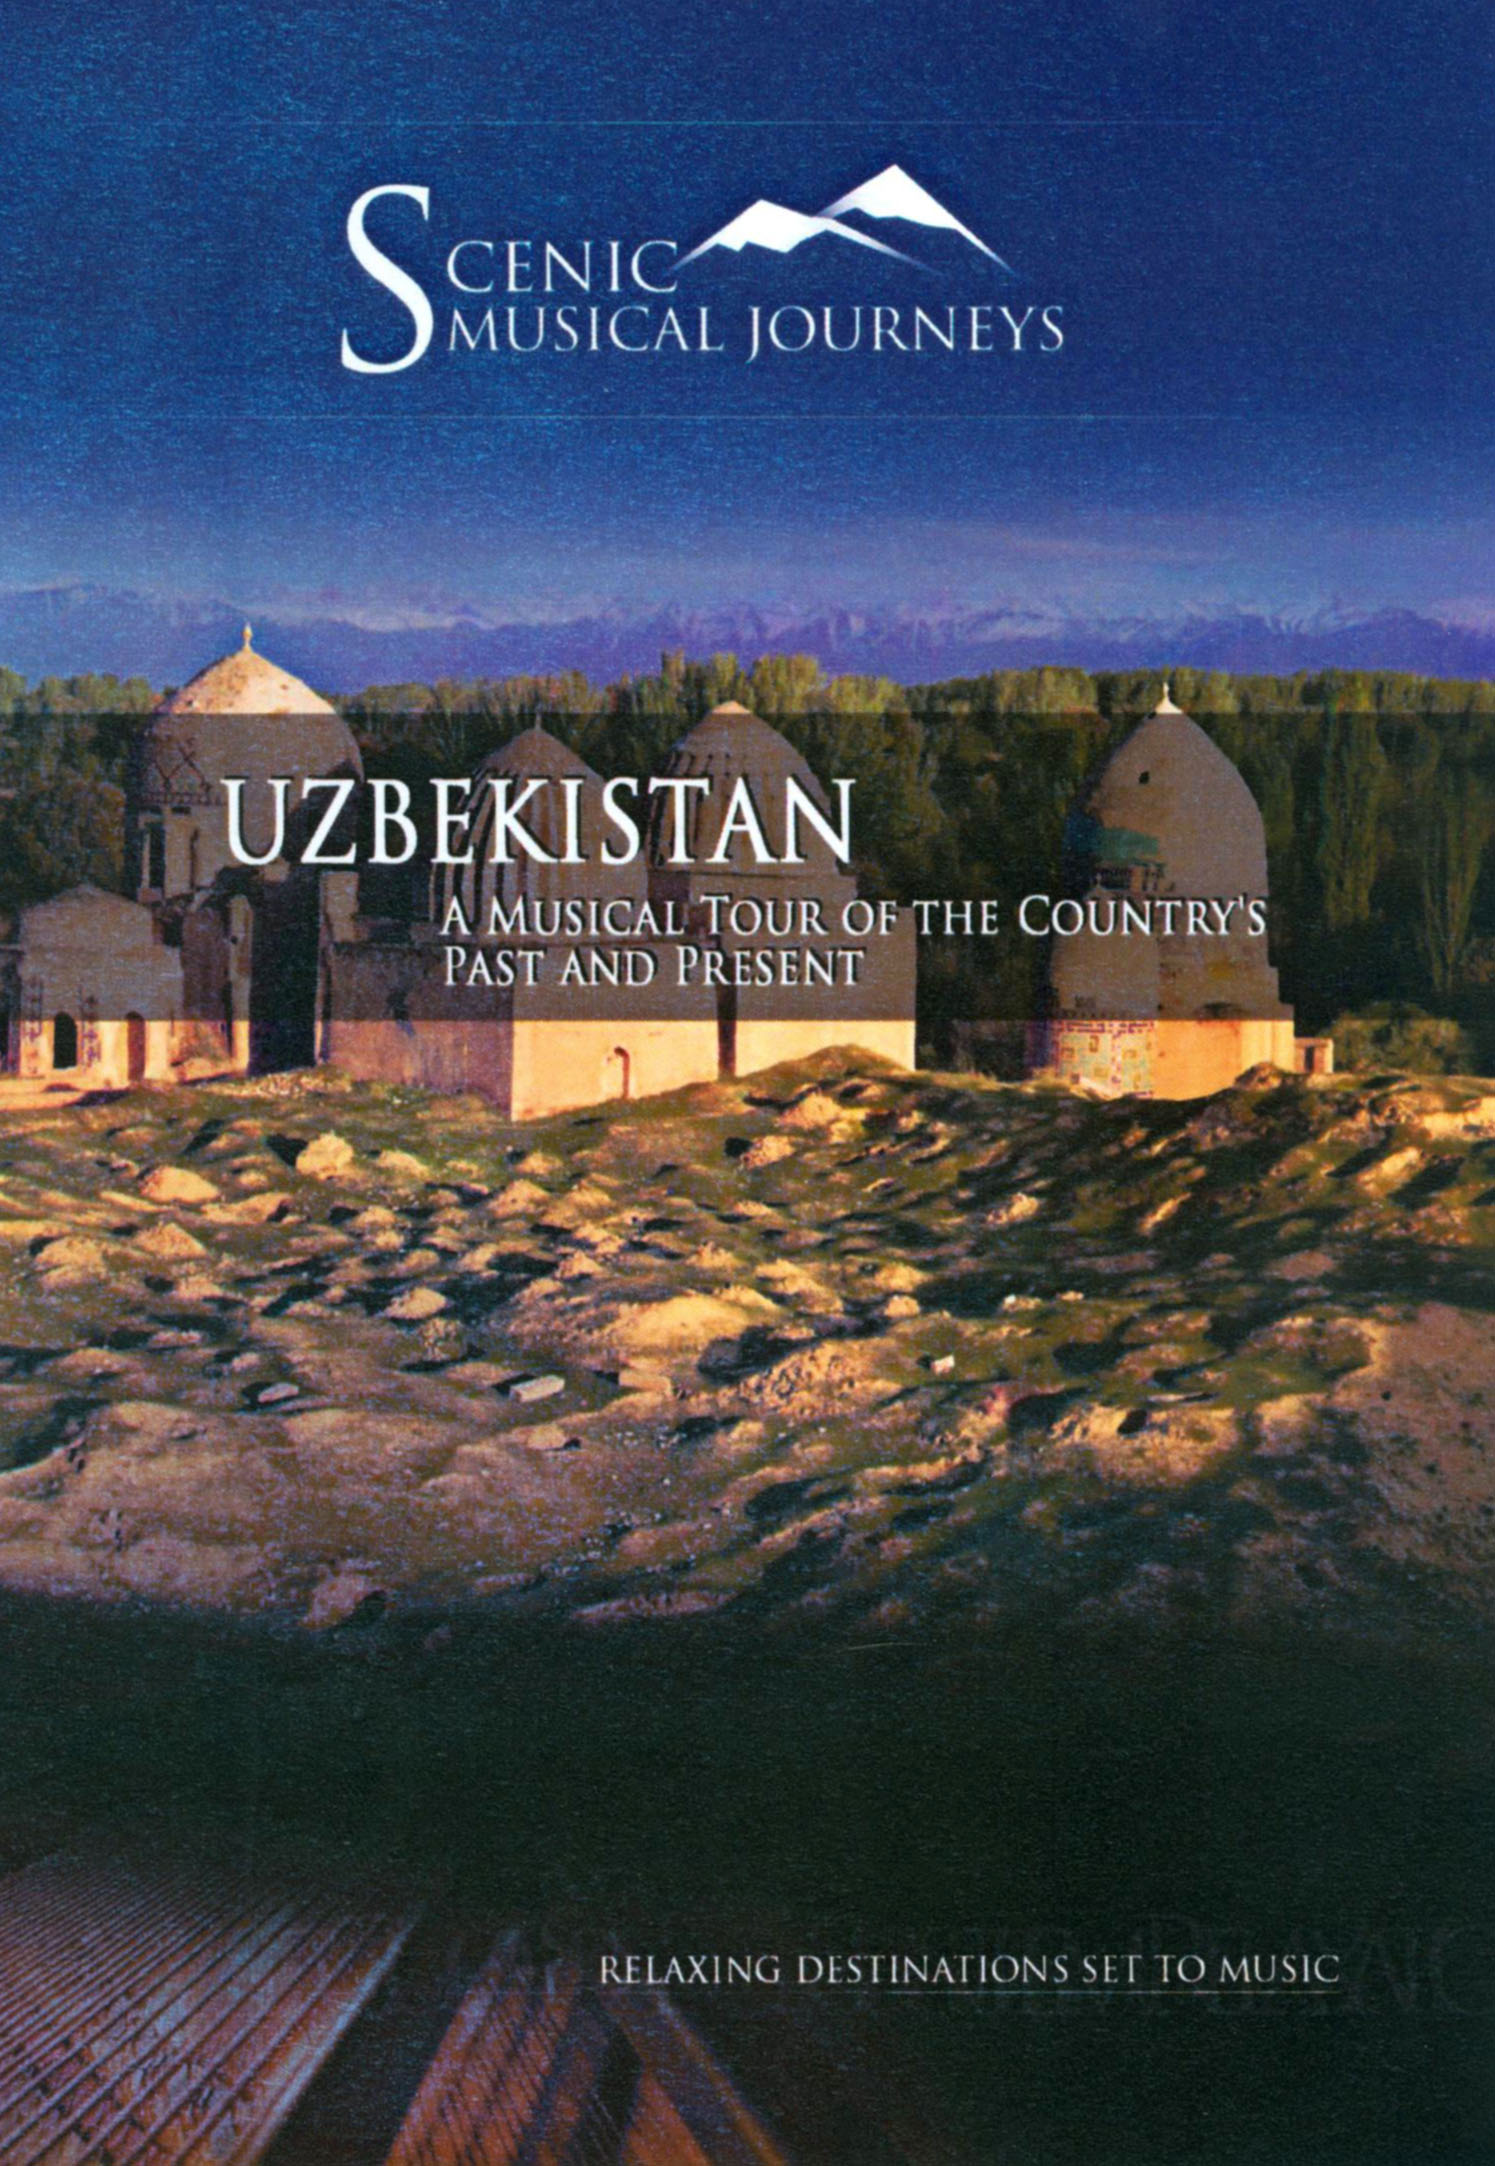 Scenic Musical Journeys: Uzbekistan - A Musical Tour of The Country's Past and Present